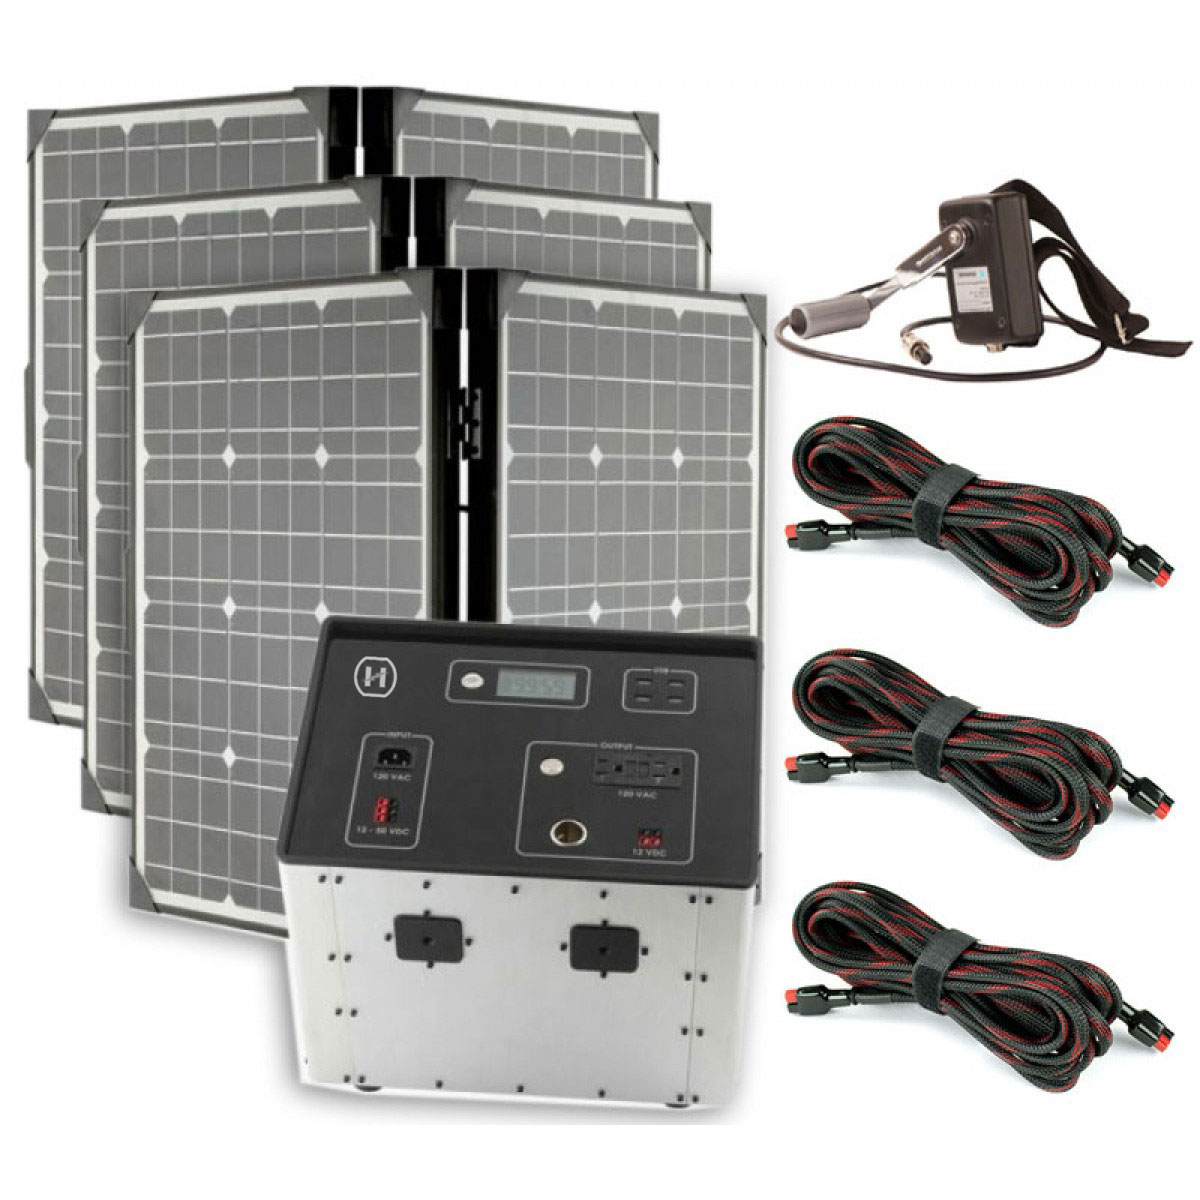 1500 Series Solar Generator Kit 0 64kWh by Humless with 3 Panels, & 3  Extension Cords